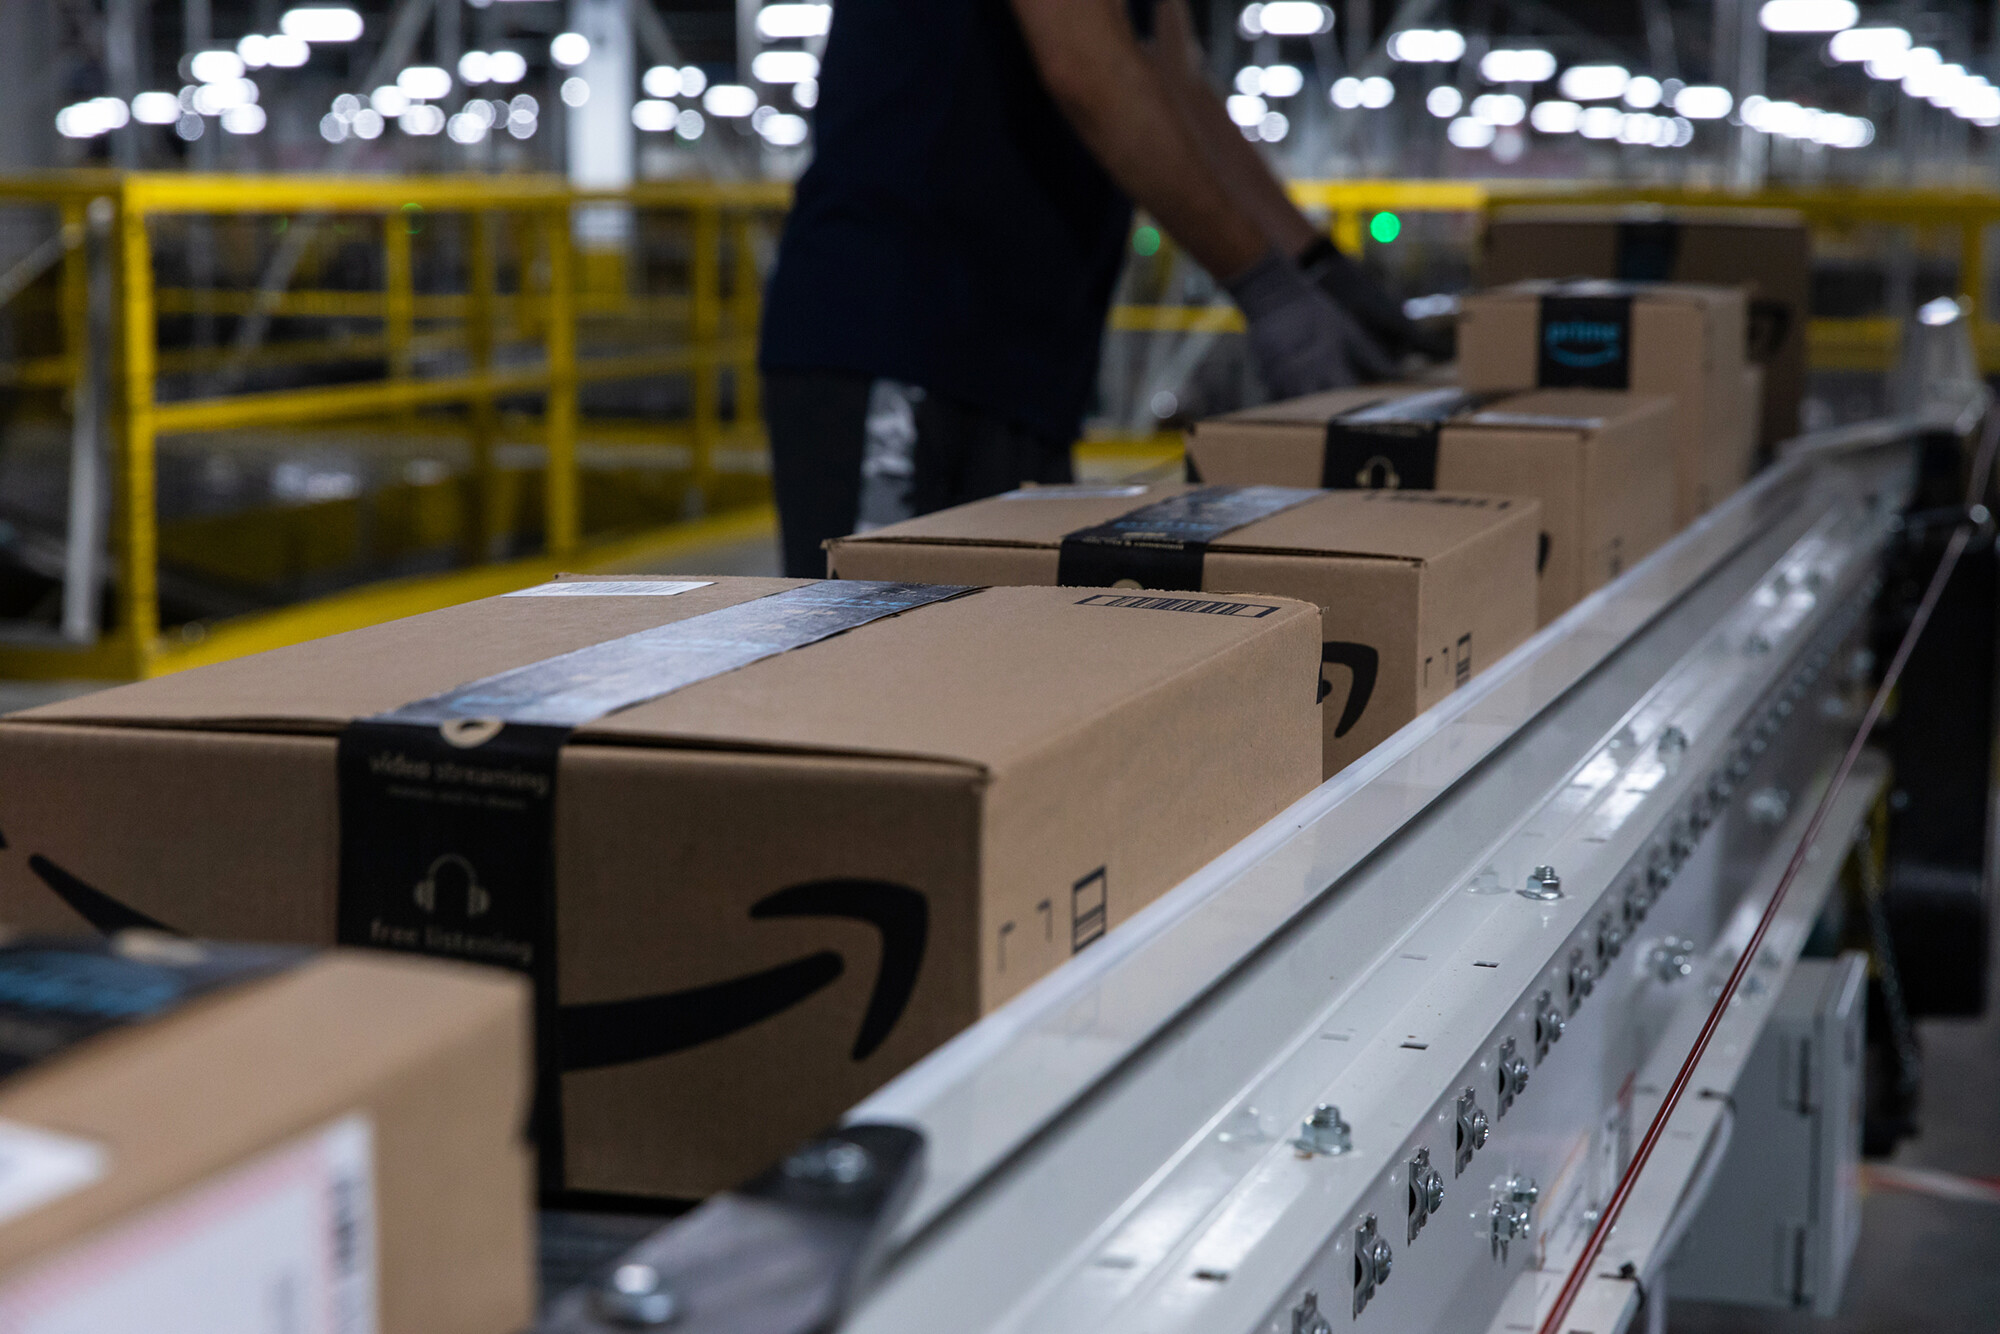 <i>Rachel Jessen/Bloomberg/Getty Images</i><br/>Boxes move along a conveyor belt at an Amazon fulfillment center on Prime Day in Raleigh